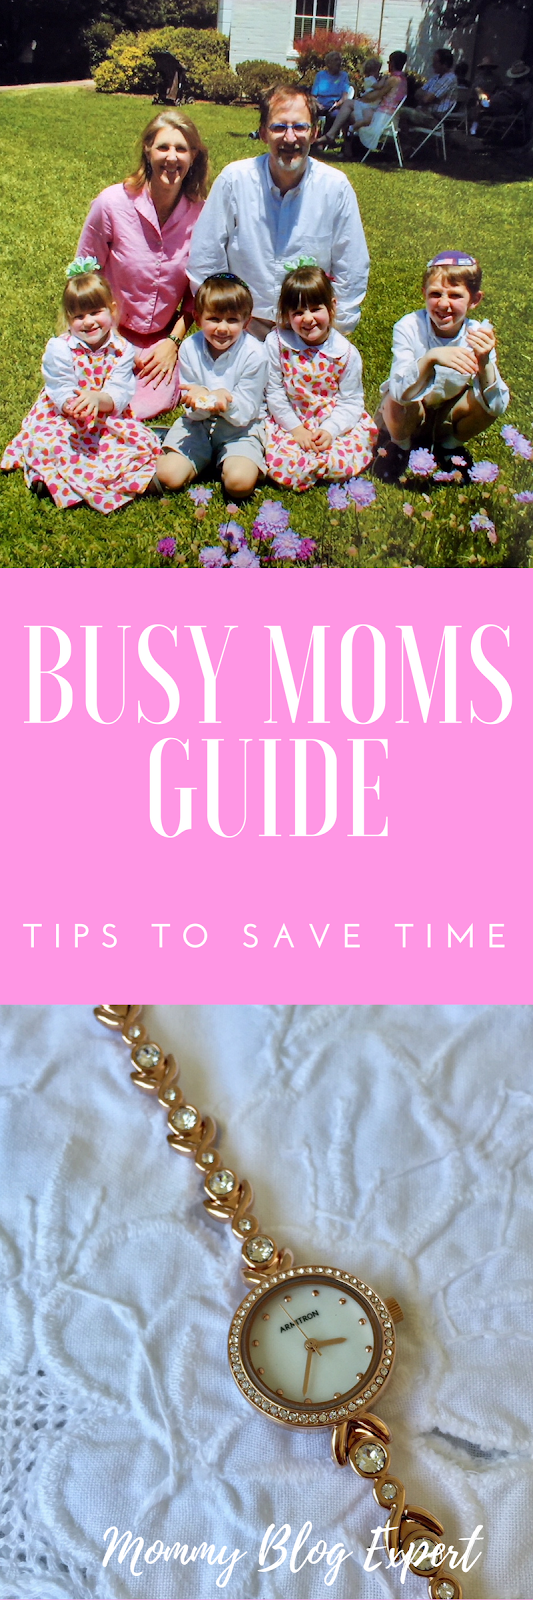 Busy Moms Guide Tips to Save Time